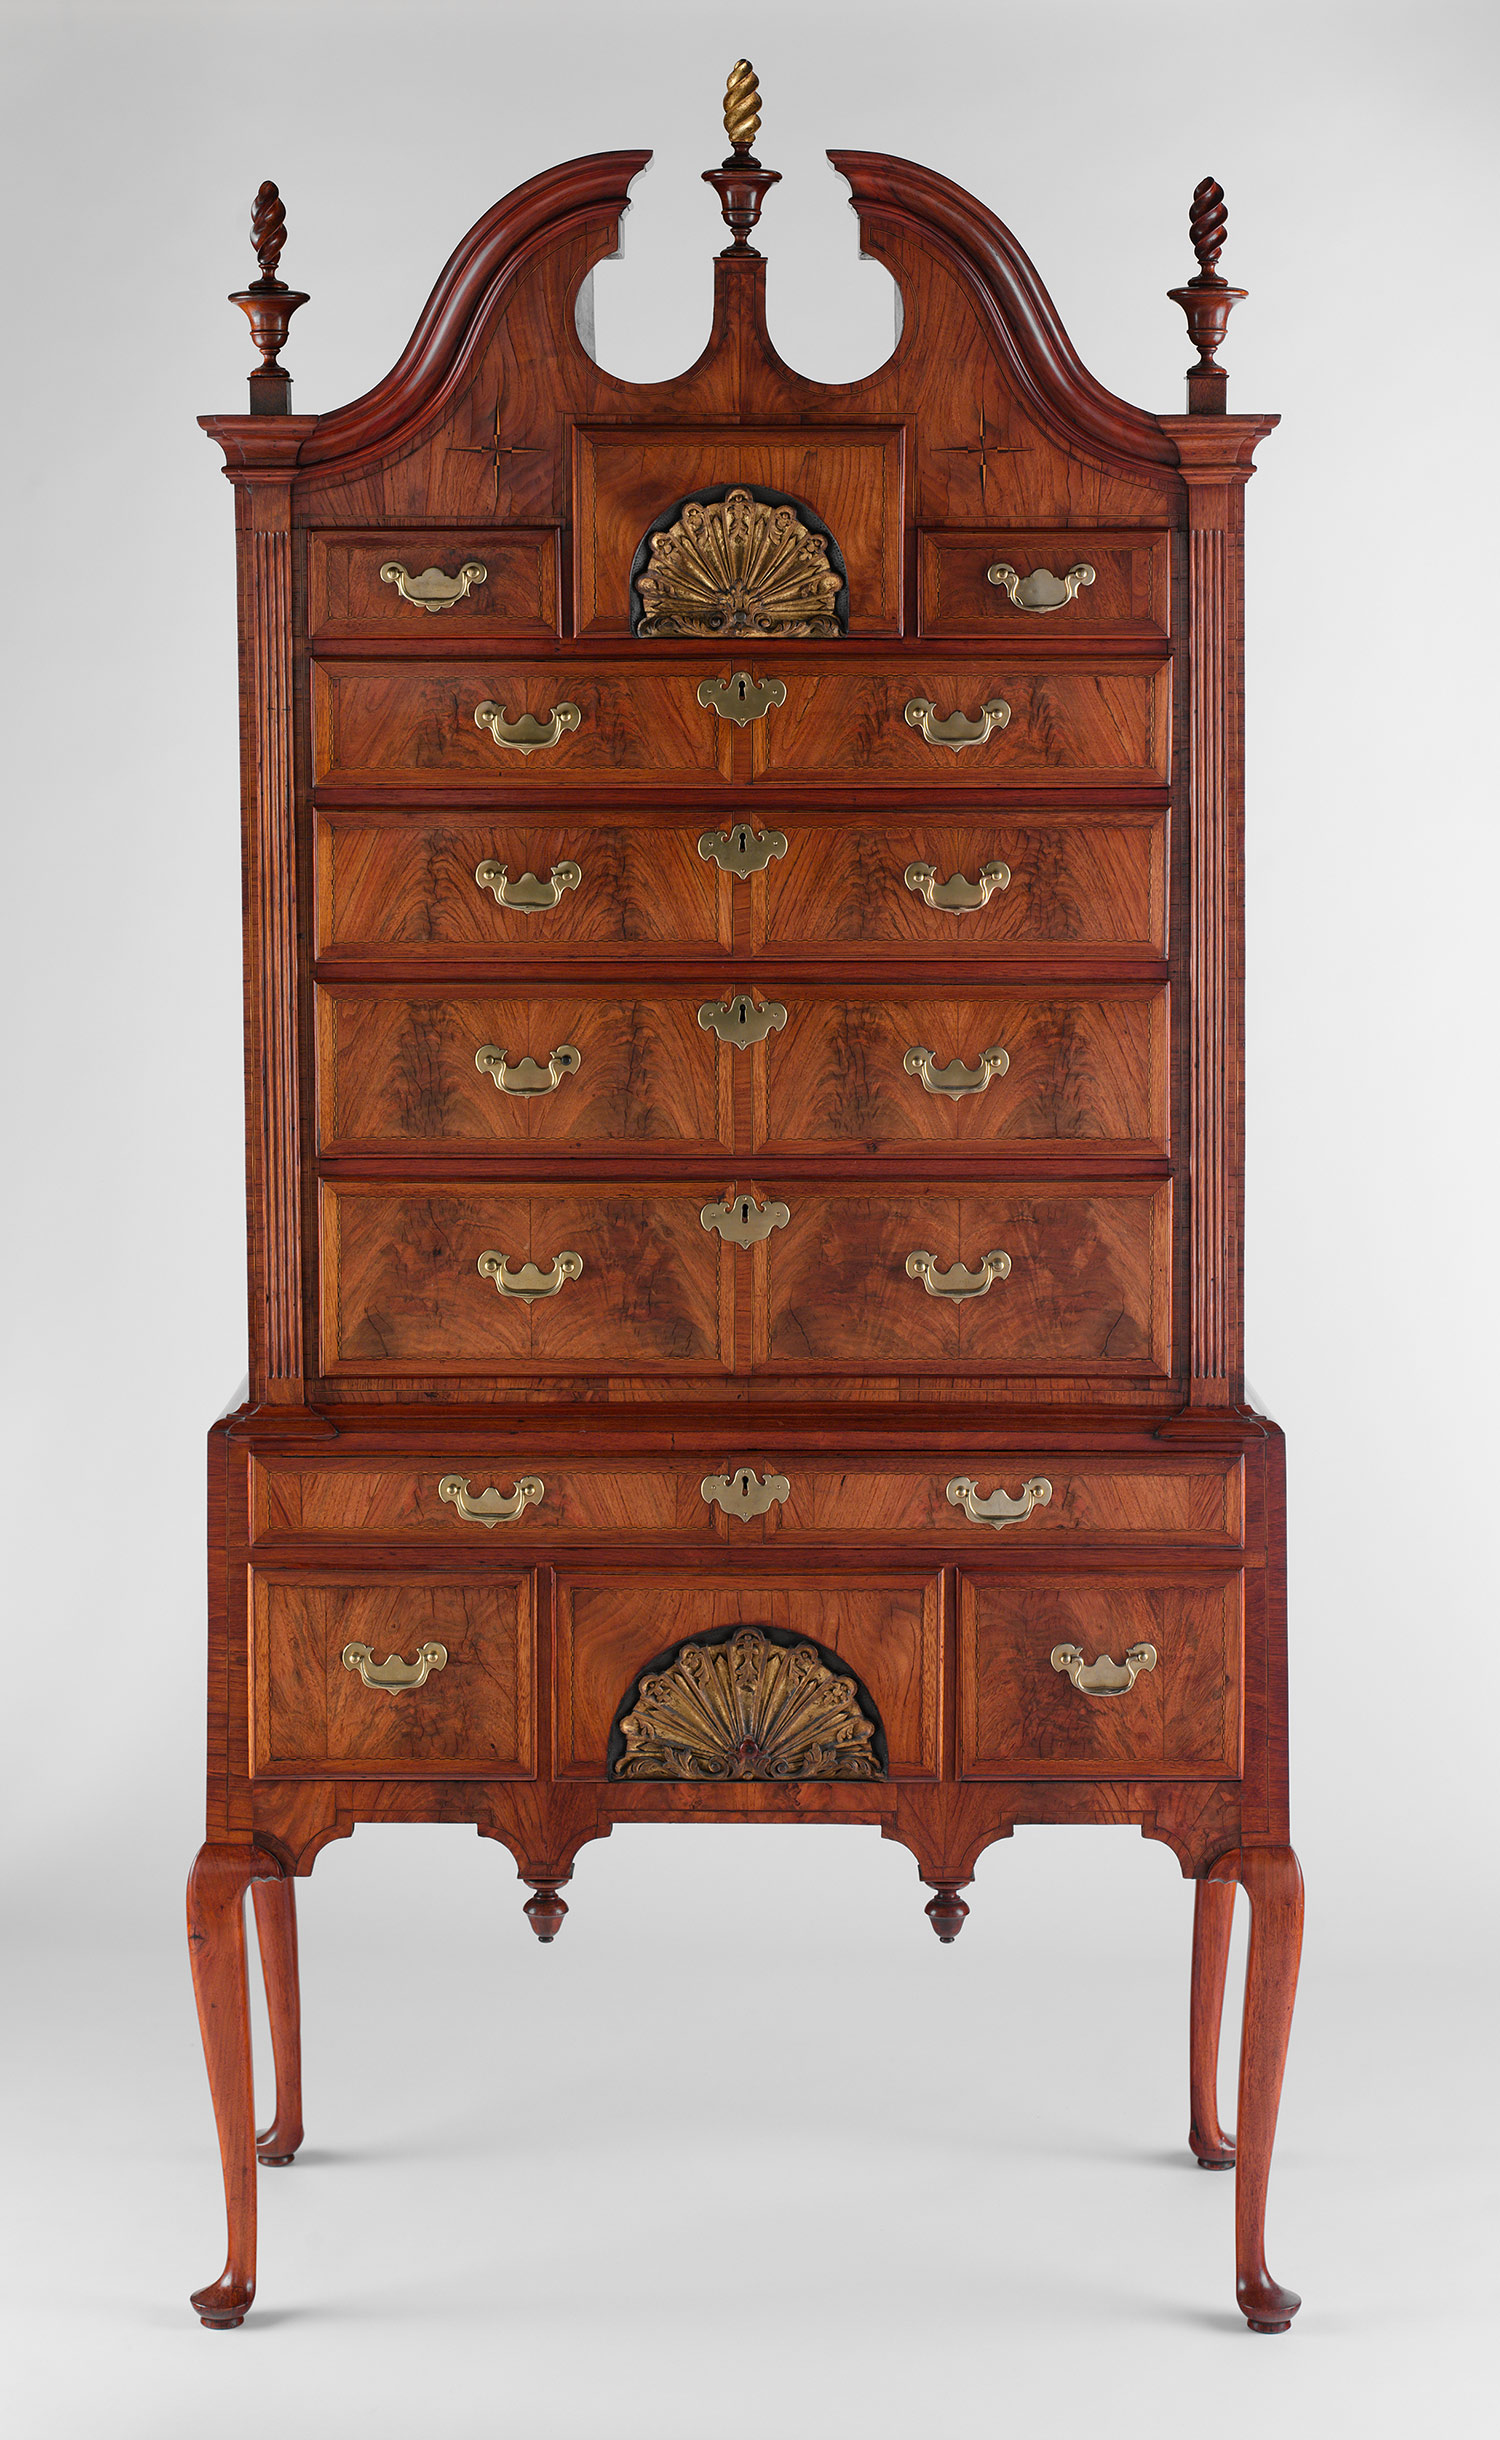 h2 10.125.62 - Antique American Furniture: A Frank Discourse